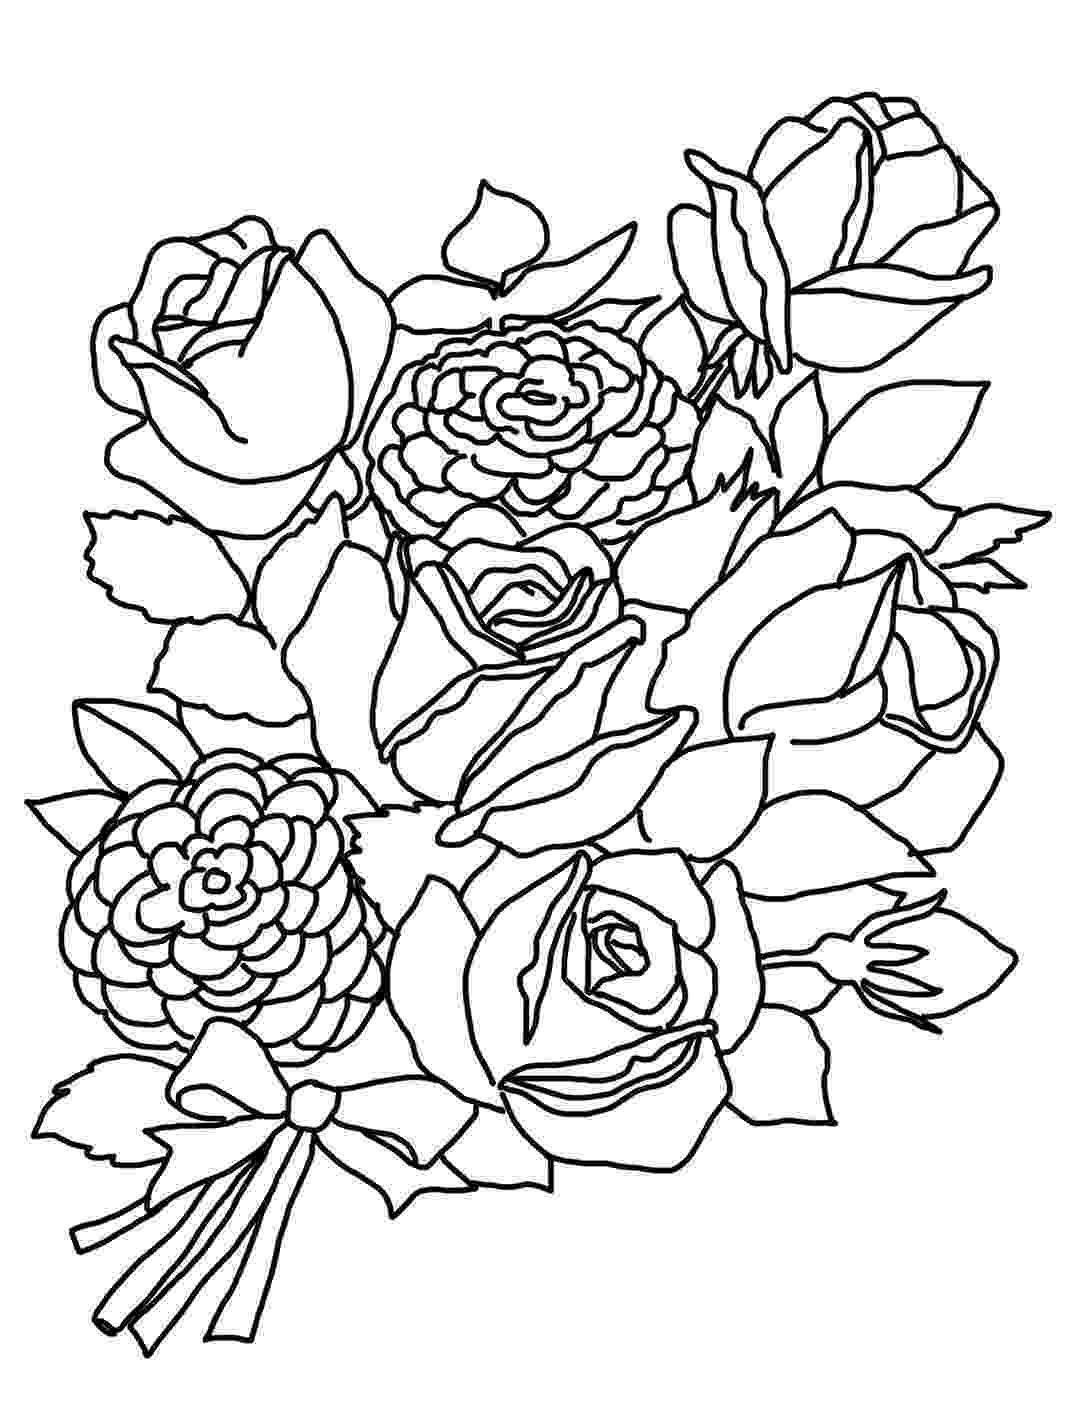 color page flower free printable flower coloring pages for kids best flower color page 1 1